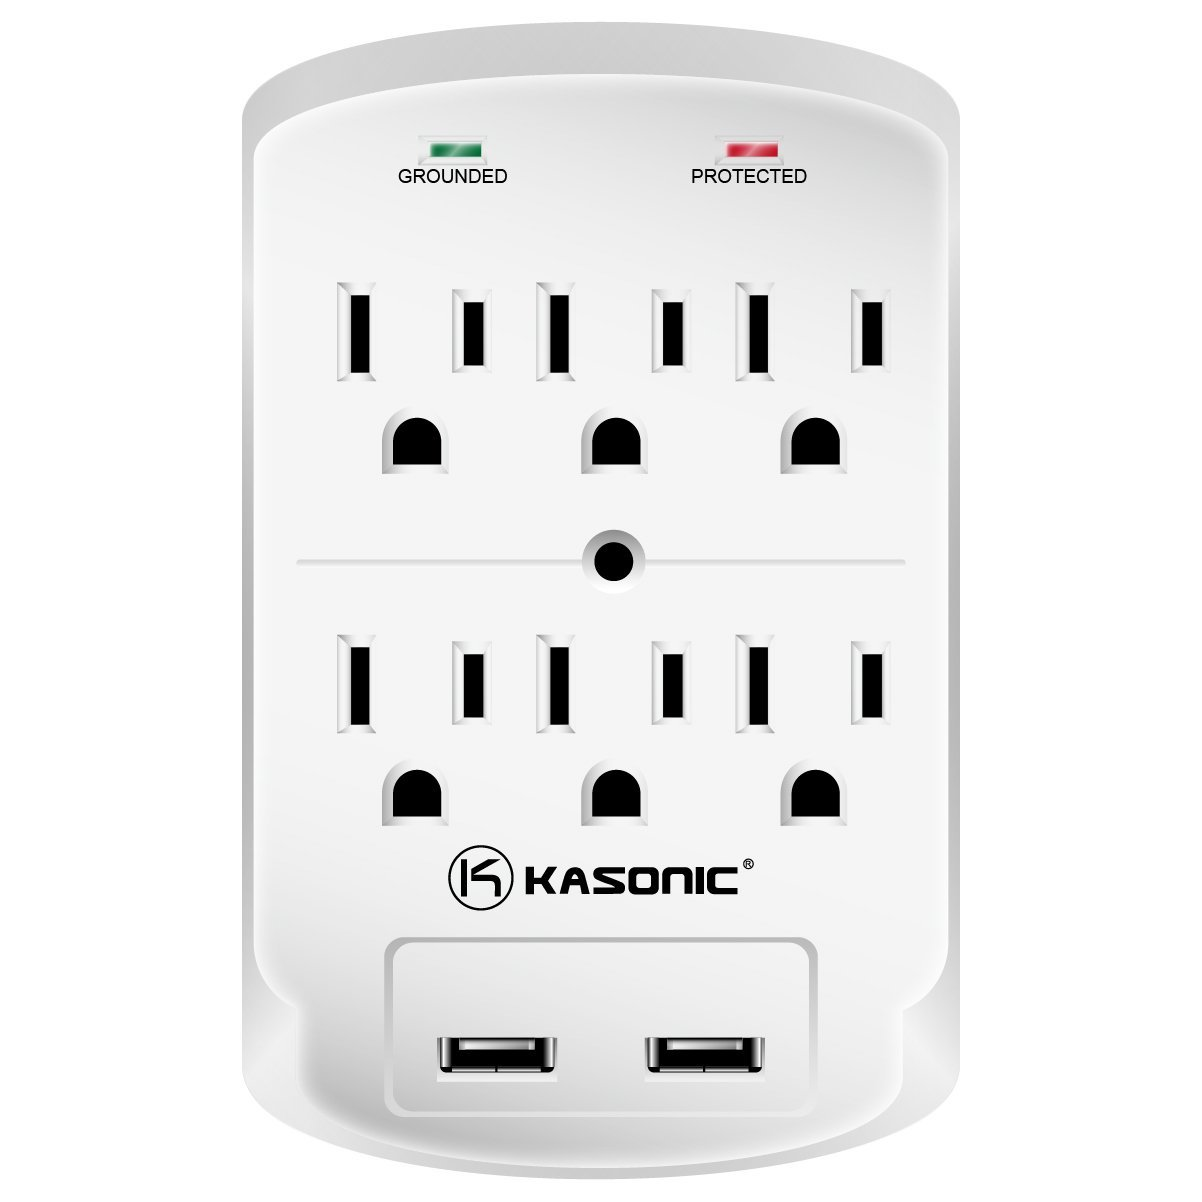 Kasonic Wall-Mount Power Outlet, 6 AC Socket Surge Protector with 2.1Amp Dual USB Charging Station; Grounding and Protection Indicator; (ETL Certified) for Home, Office (1 Pack)